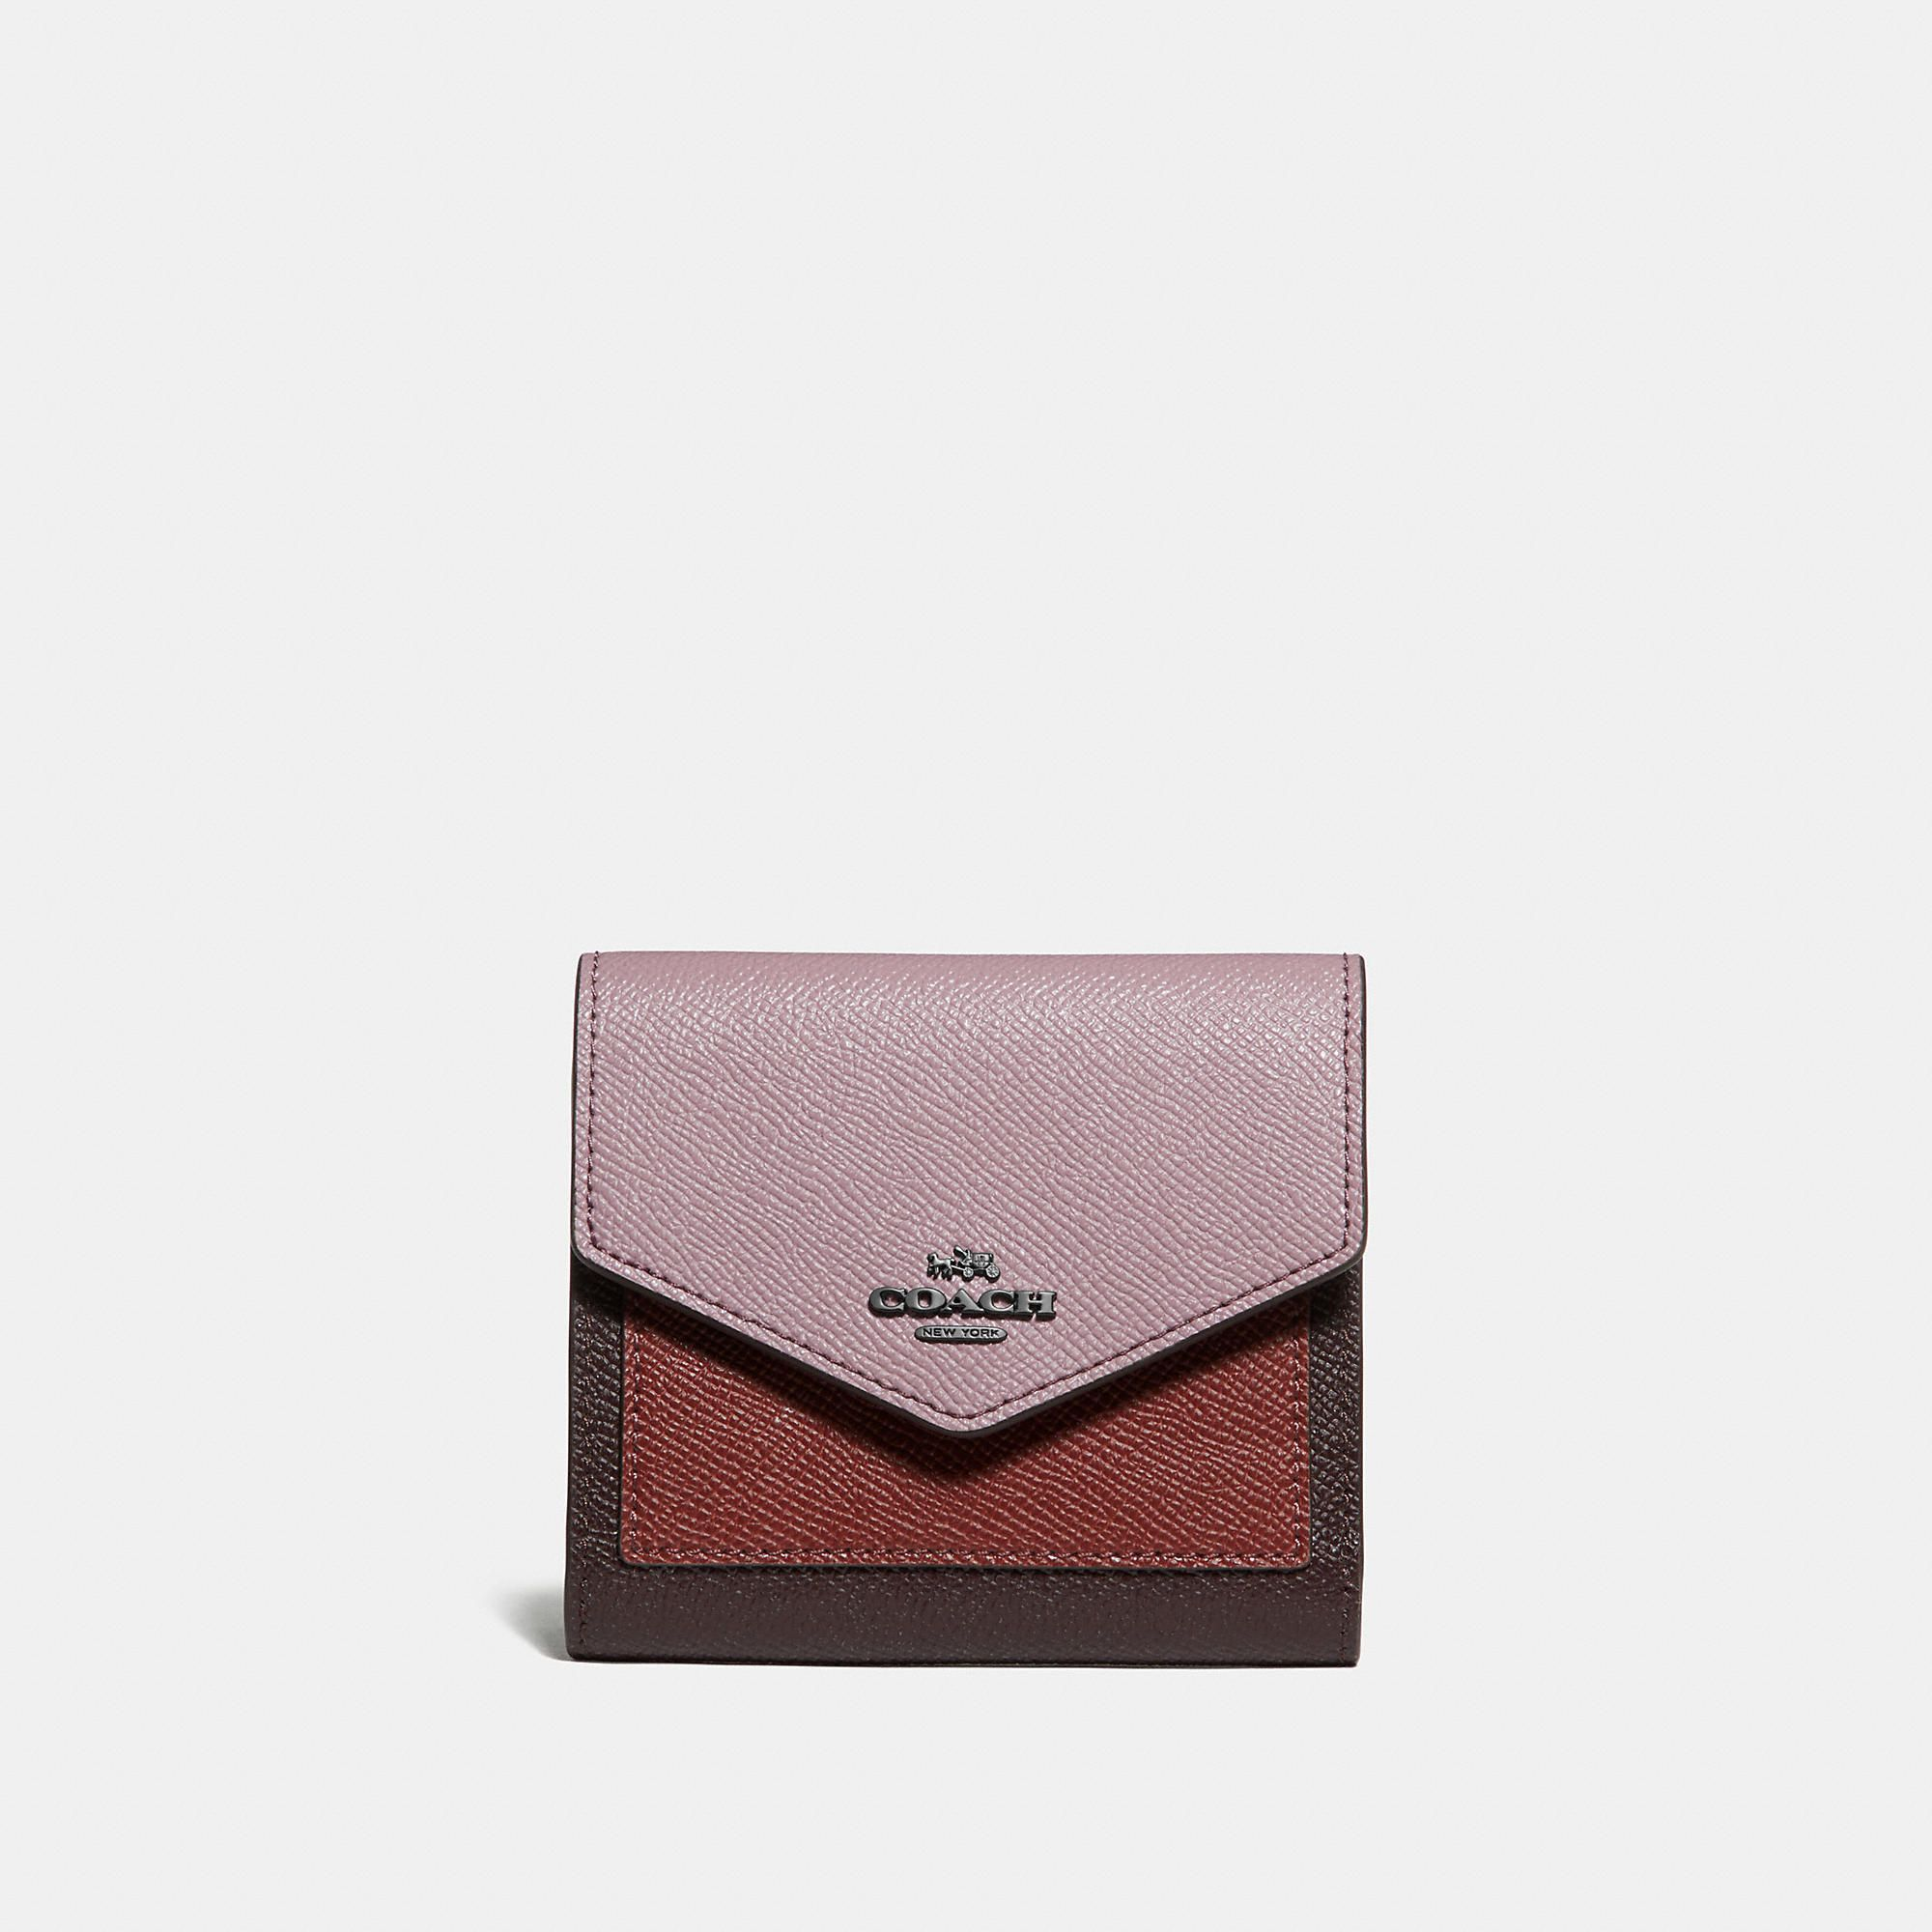 4f05feeec1 Coach Small Wallet In Colorblock | Products | Small wallet, Wallet ...